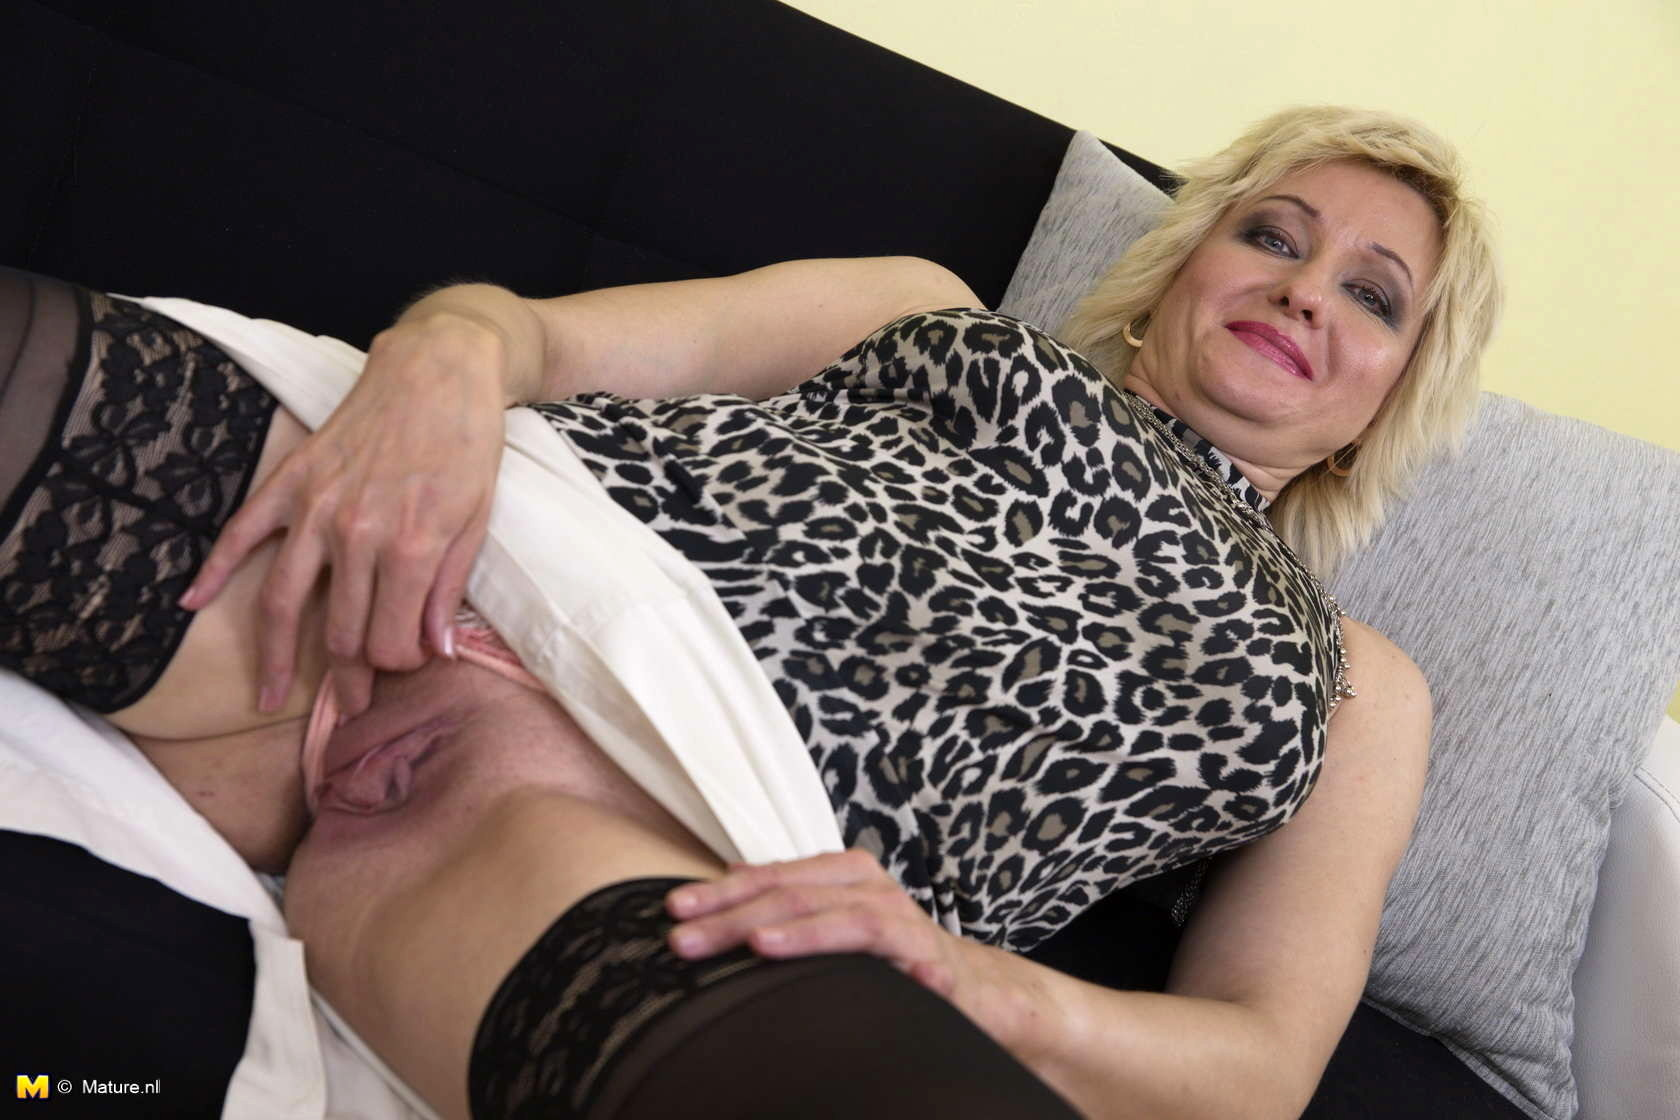 women-mature-woman-playing-with-herself-douglas-nudes-rob